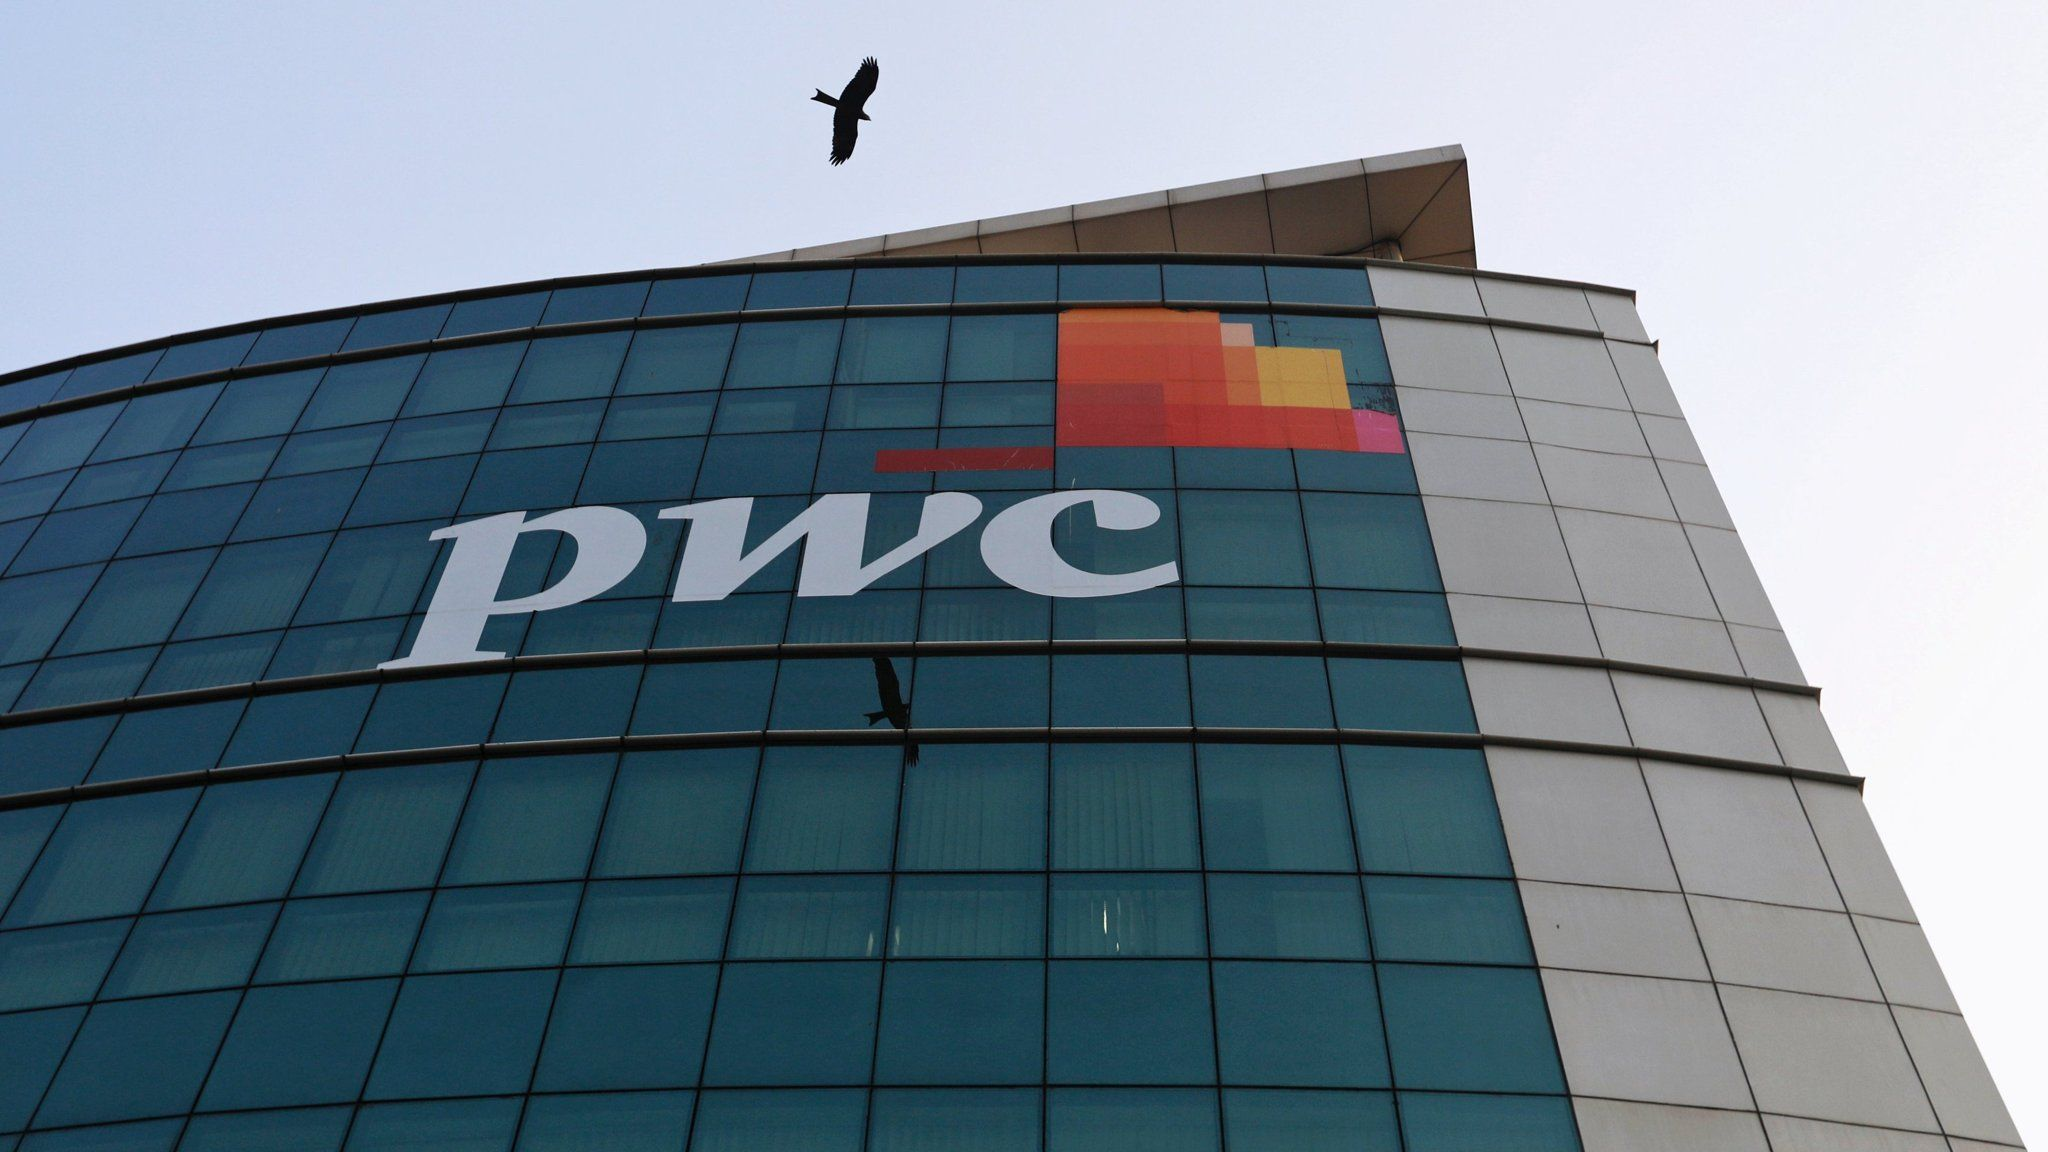 India issues two-year audit ban on PwC for Satyam shortcomings